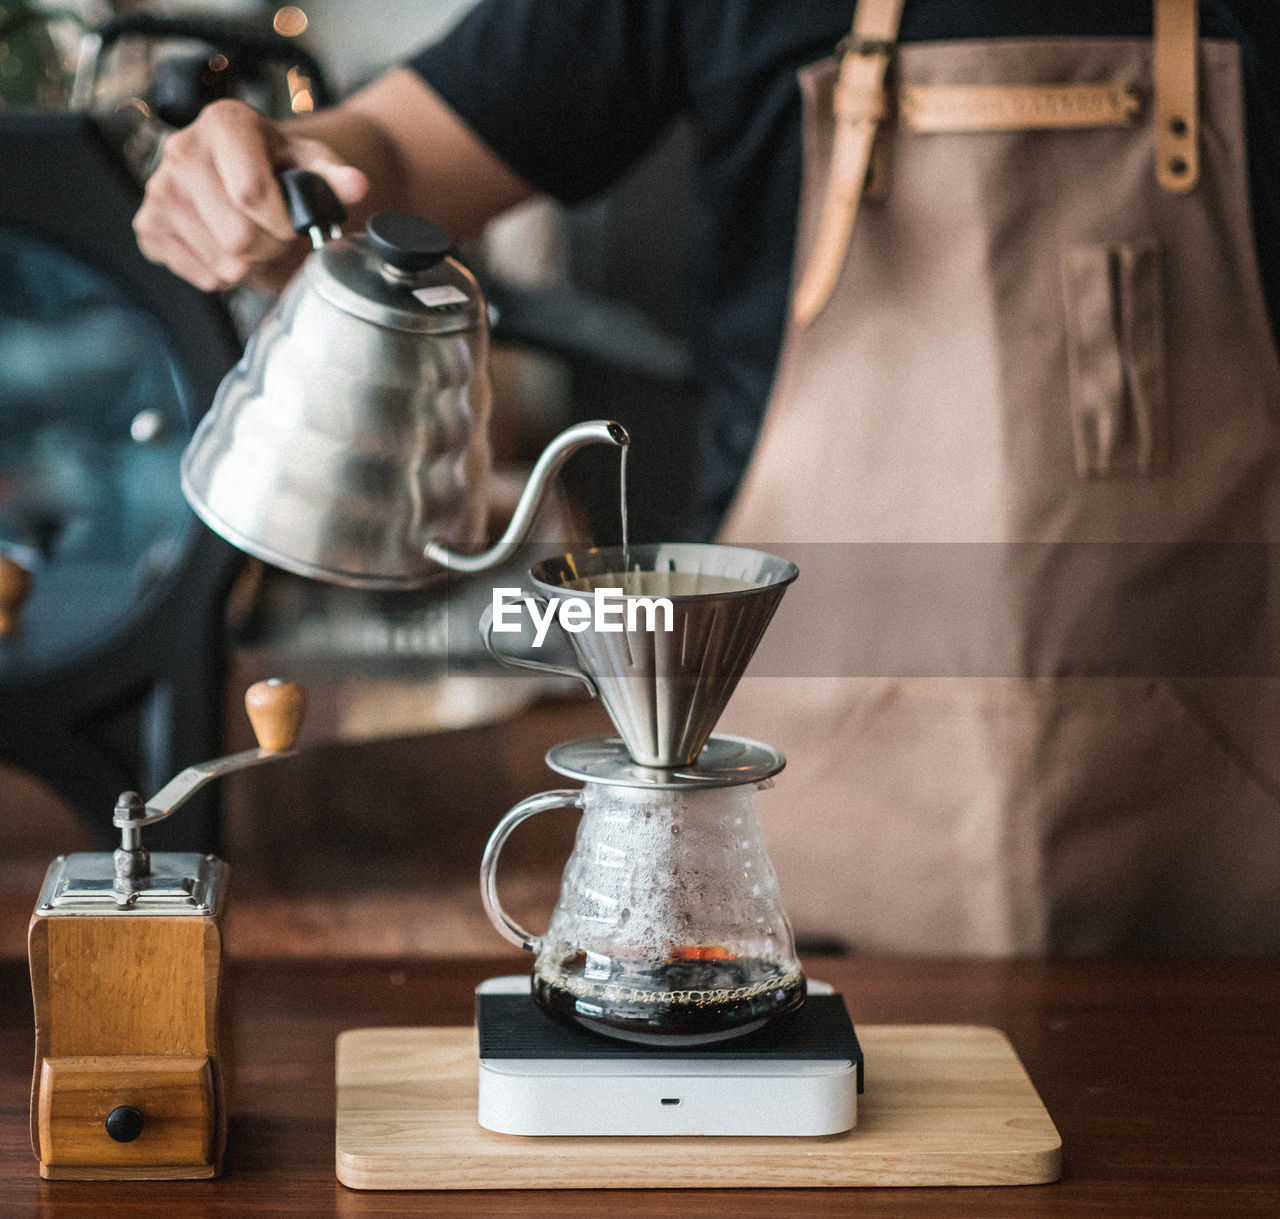 Midsection Of Barista Pouring Coffee In Jar On Table